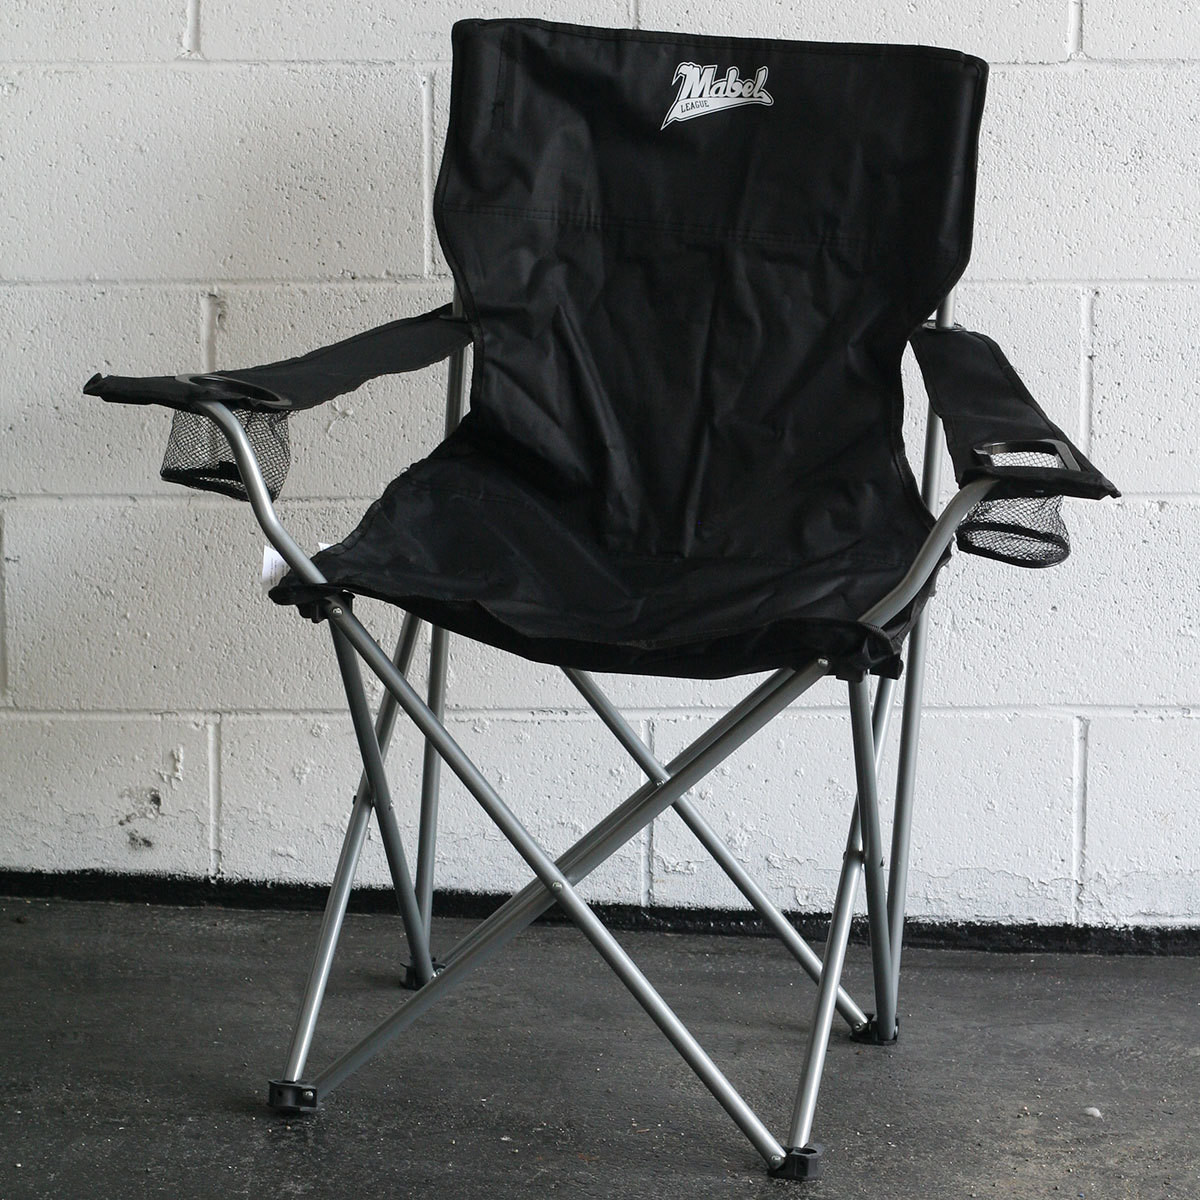 Mabel Camp Chair